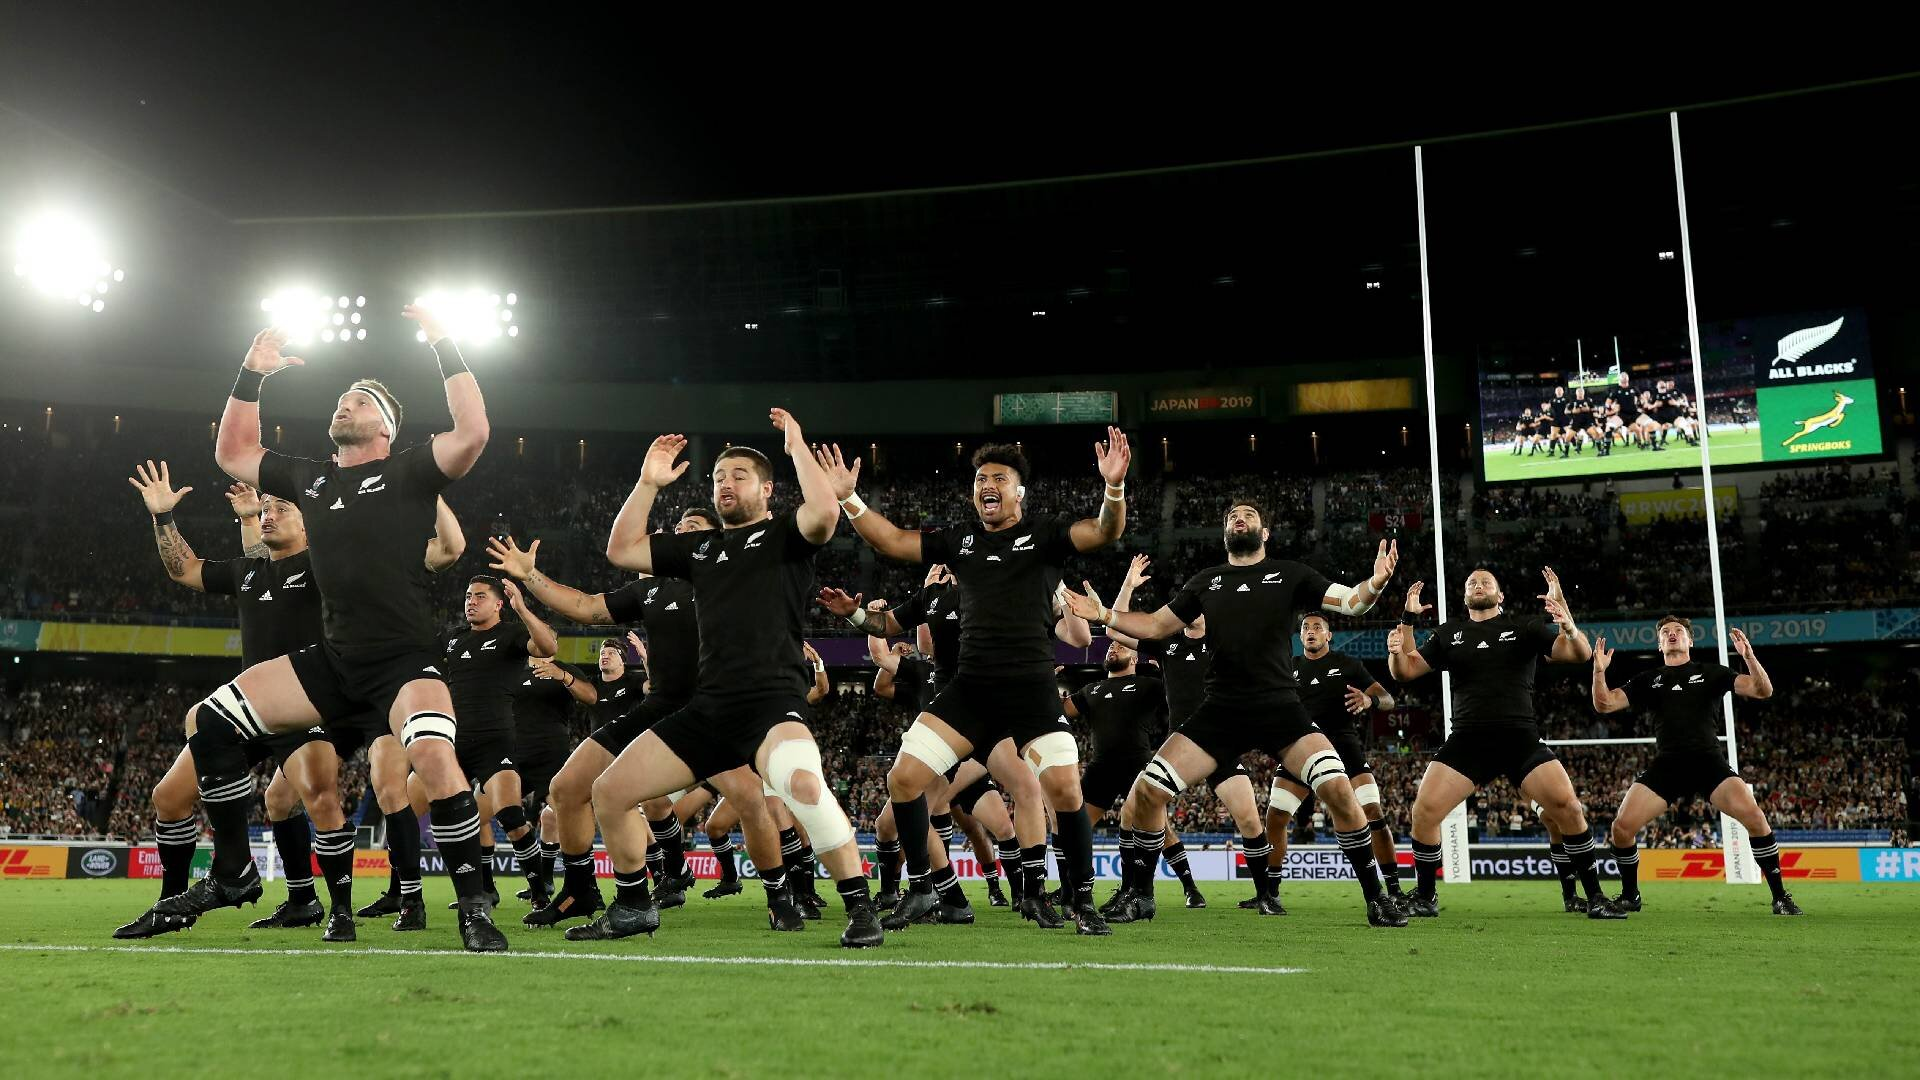 New Zealand Rugby are never going to get a better opportunity to reclaim ownership of the game